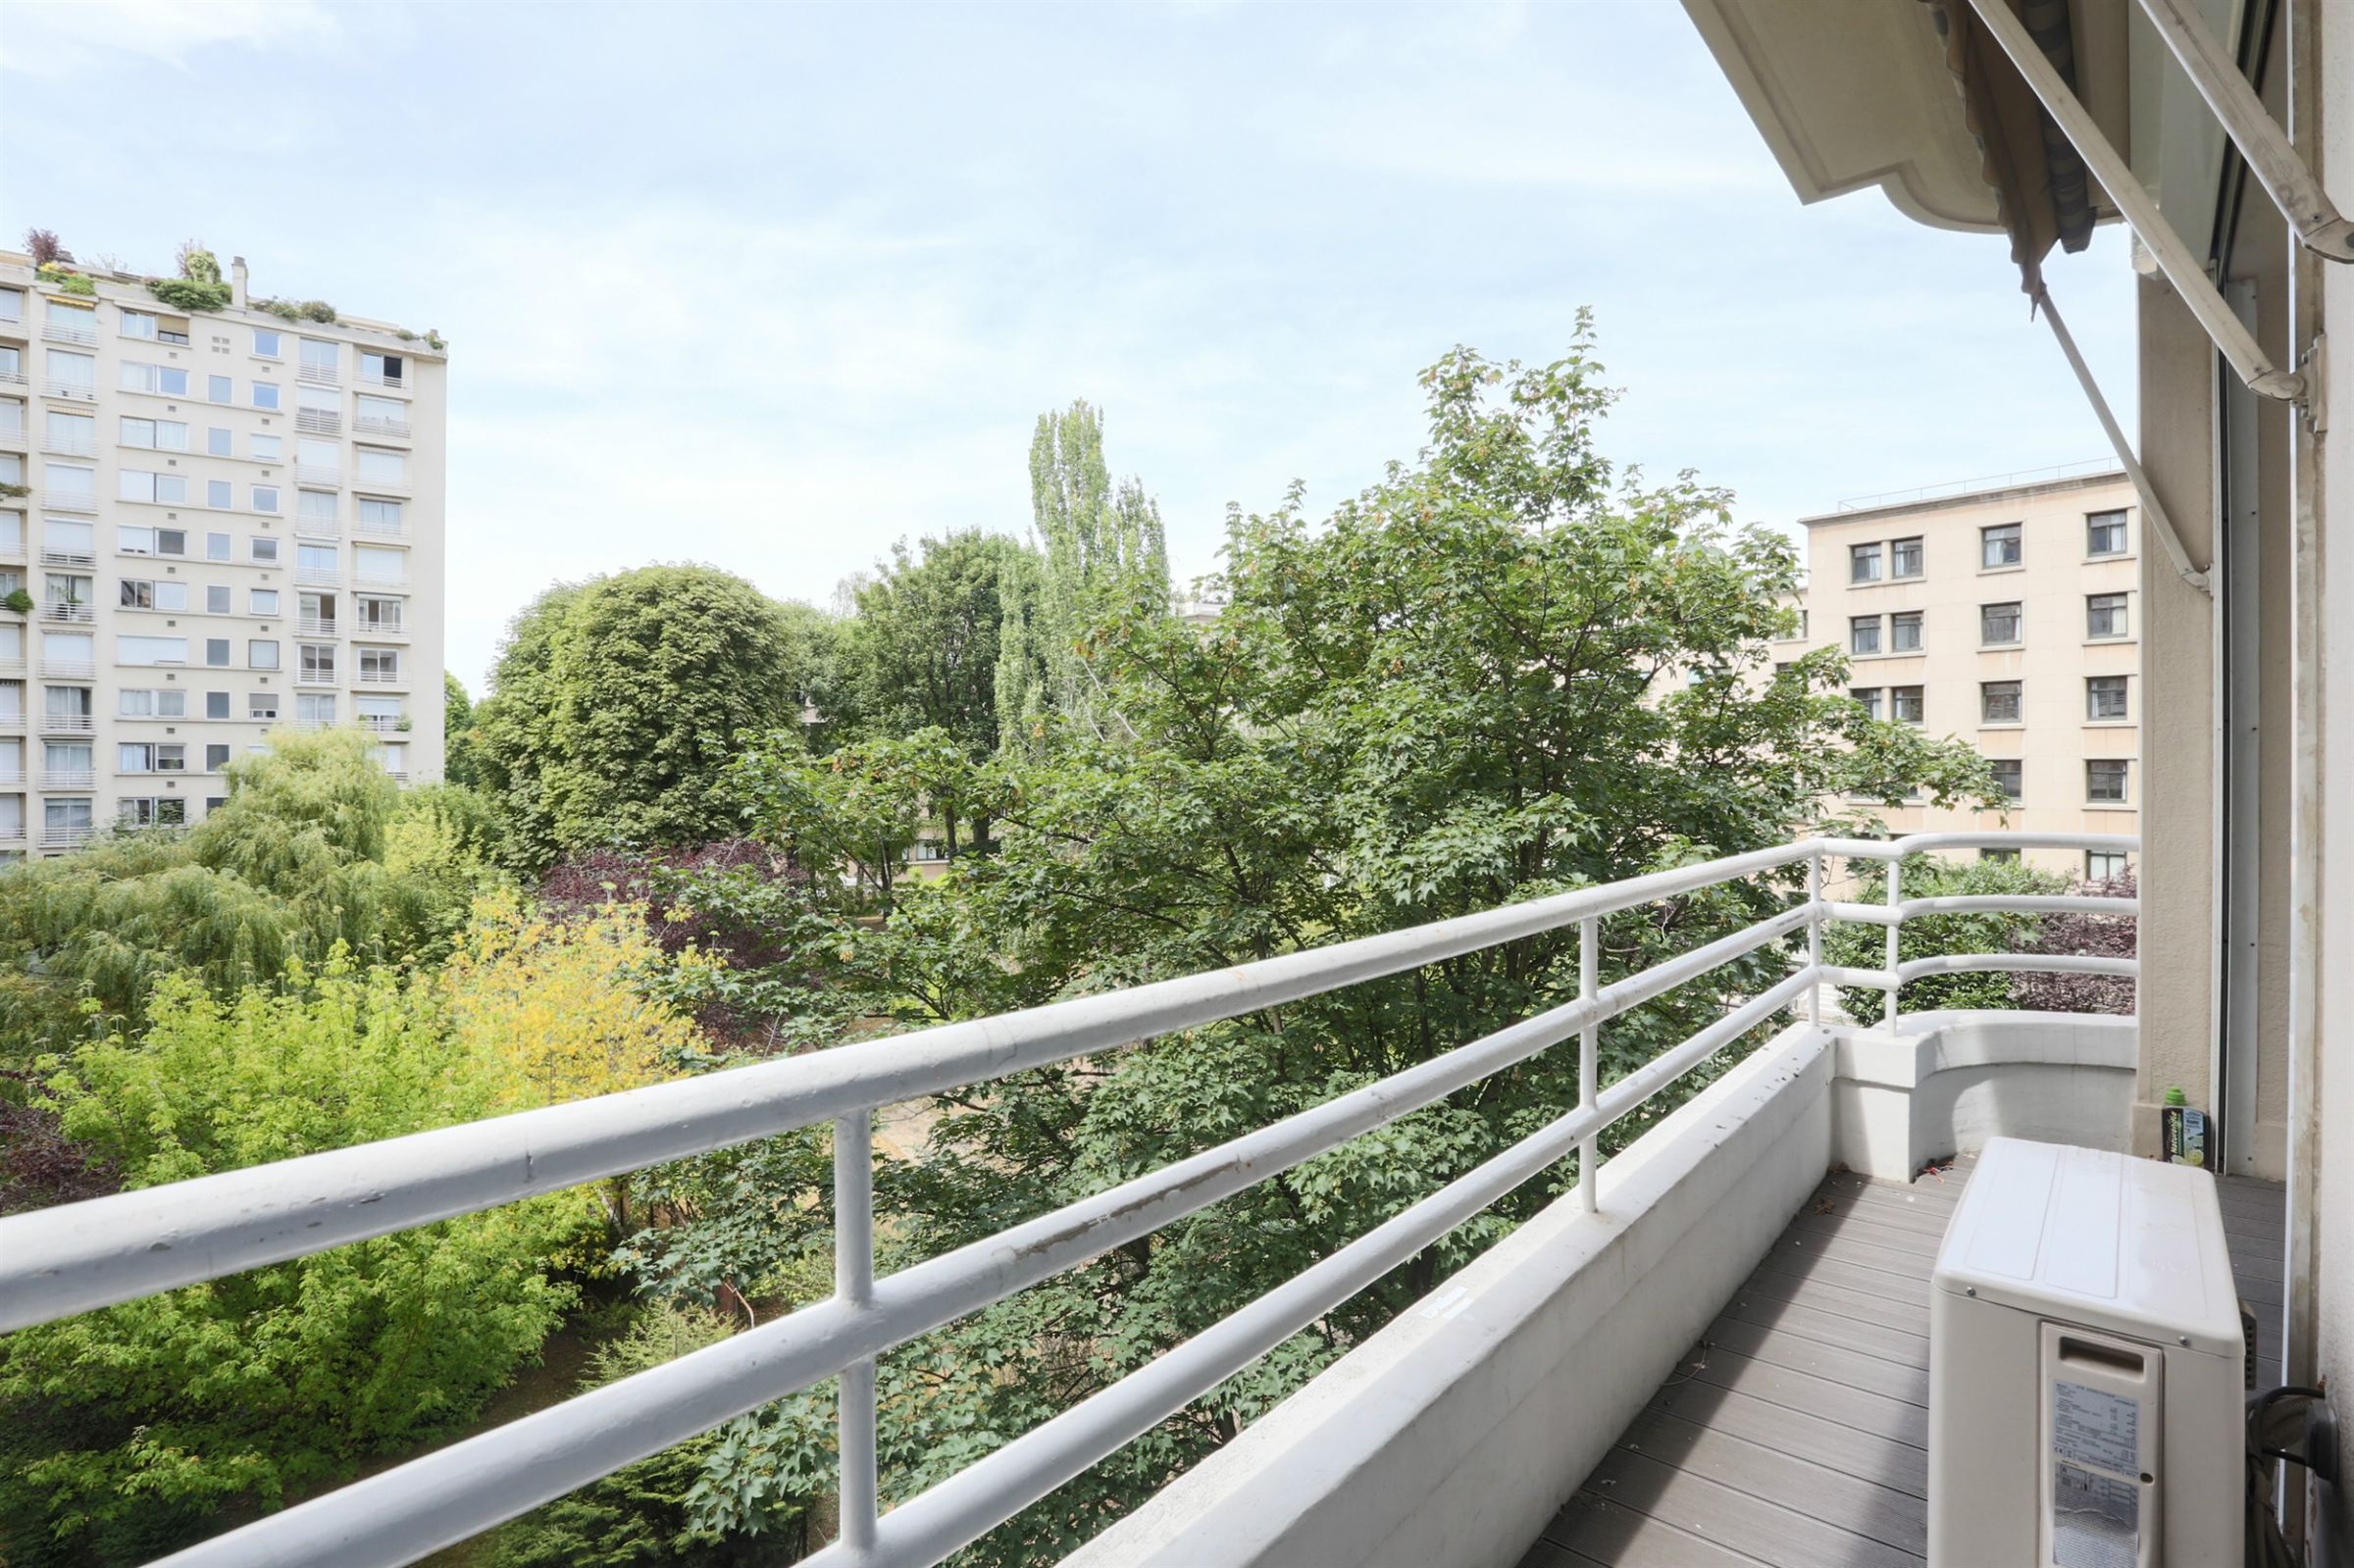 Apartamento por un Venta en Paris 16 - Docteur Blanche - A 137 sq.m apartment + balconies/terraces Paris, Paris 75016 Francia